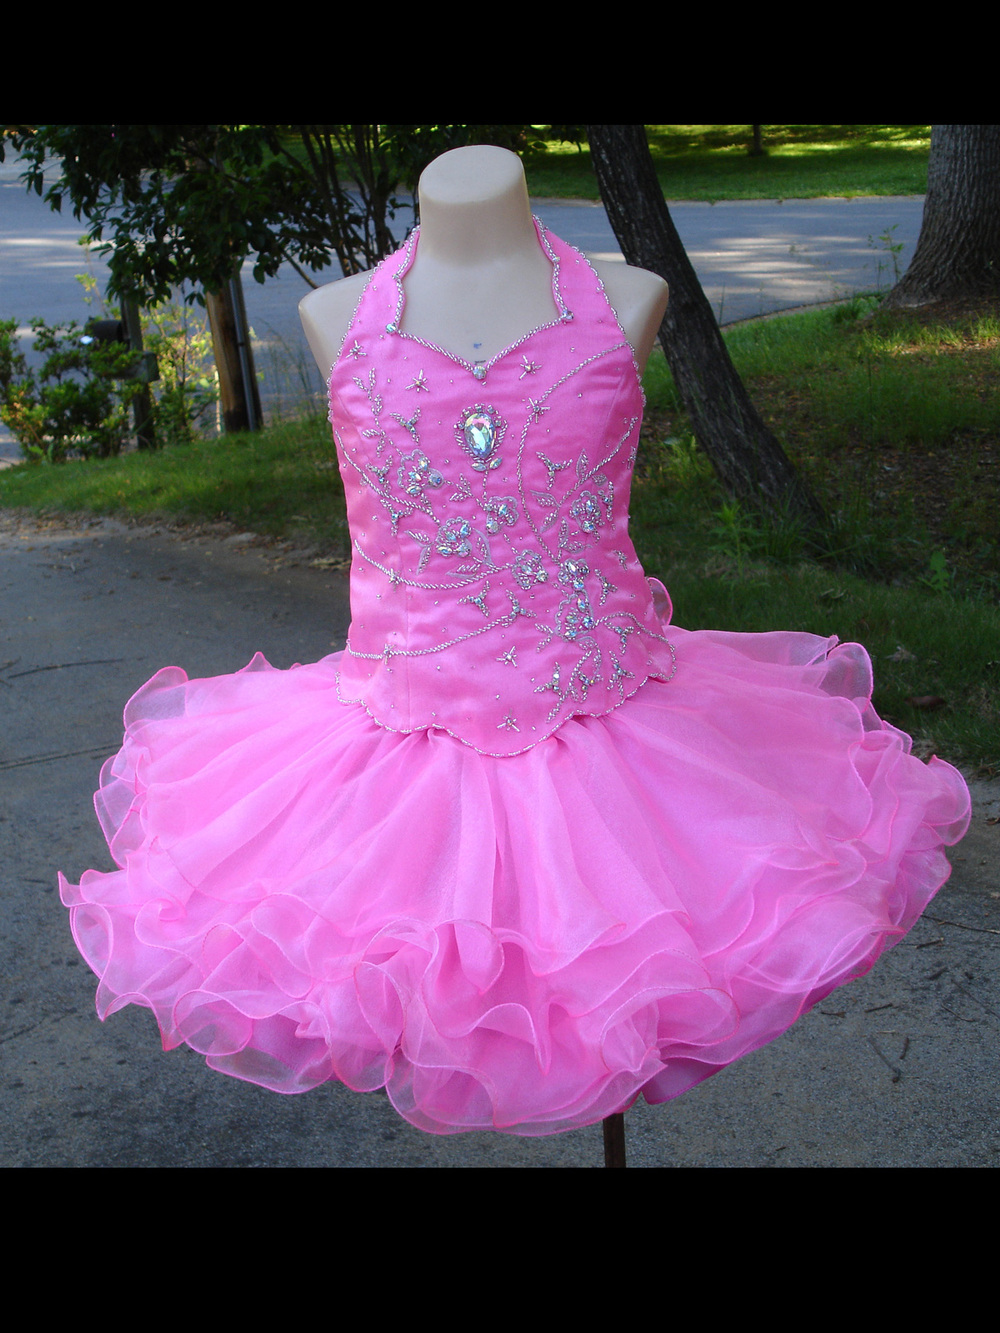 Popular Cupcake Pageant Dress Pink-Buy Cheap Cupcake Pageant Dress ...